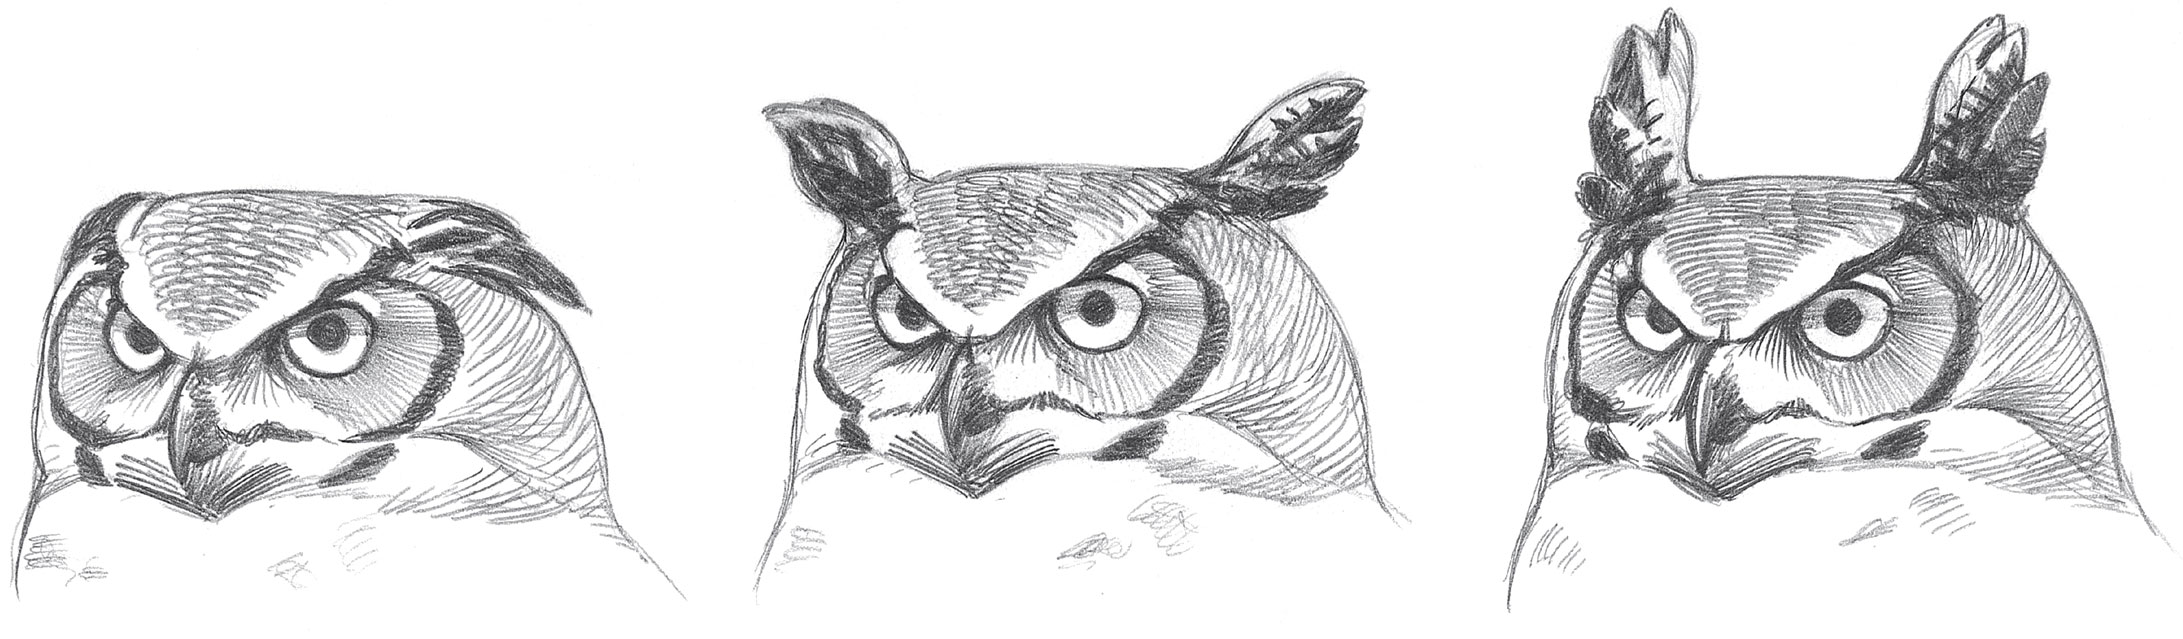 A Great Horned Owl with horns raised and lowered. Illustration: David Allen Sibley